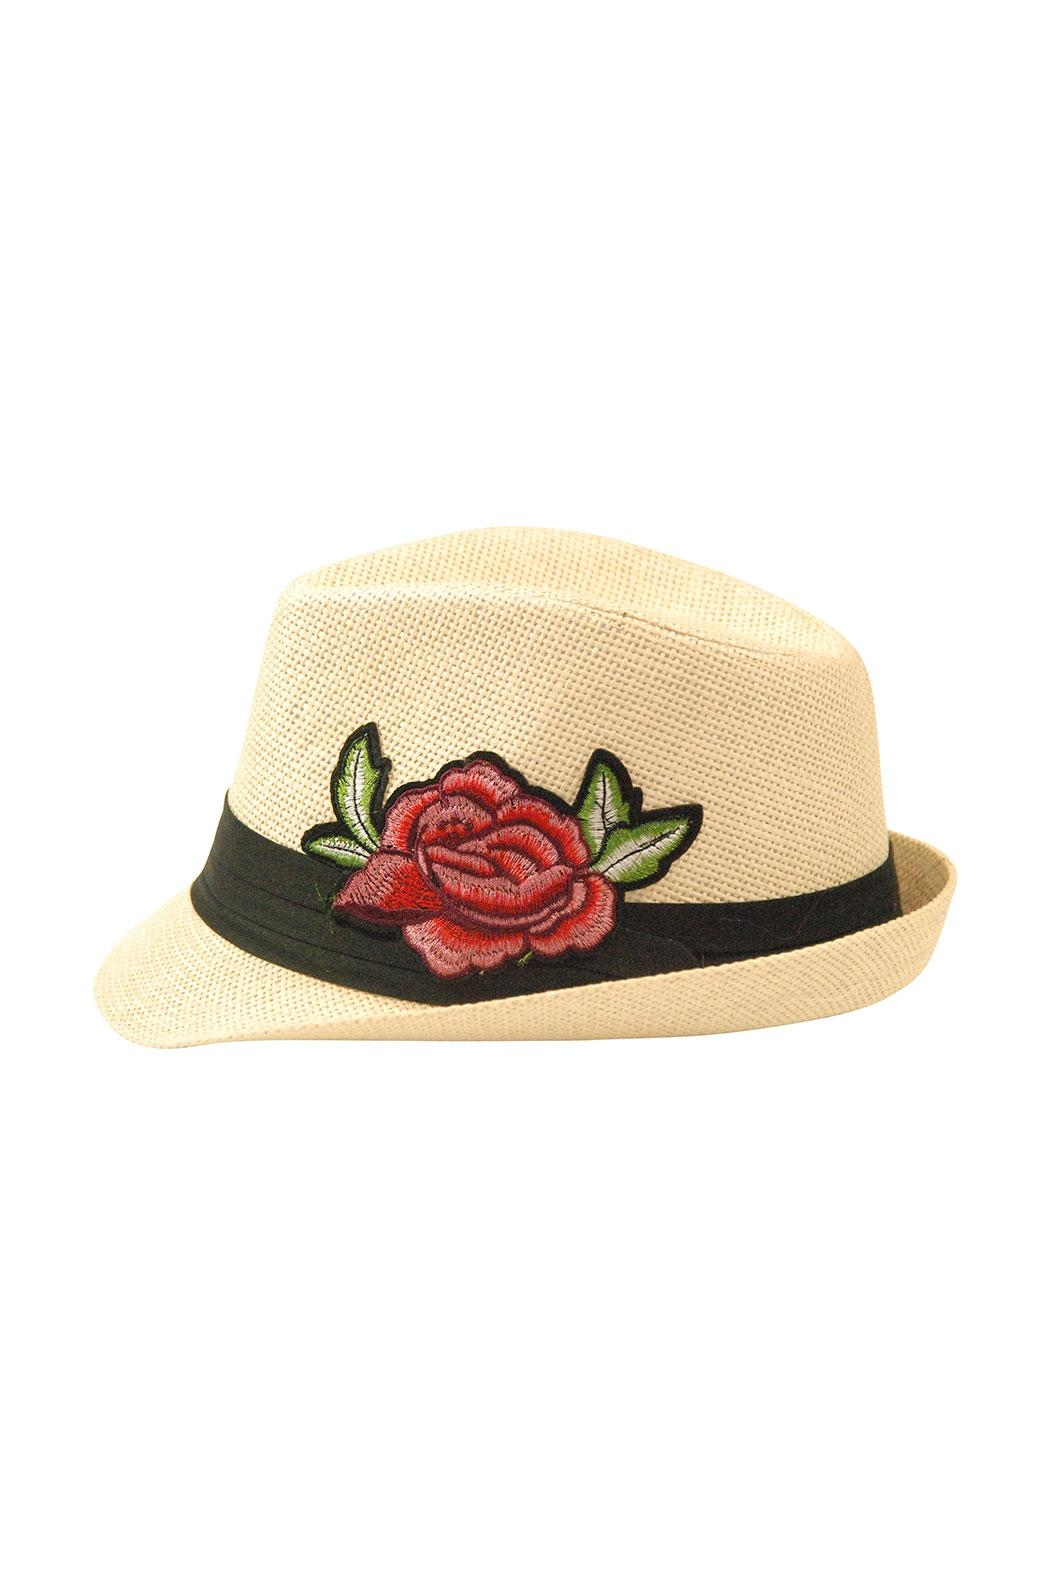 The Hatter Company Floral Patch Fedora Hat - Main Image